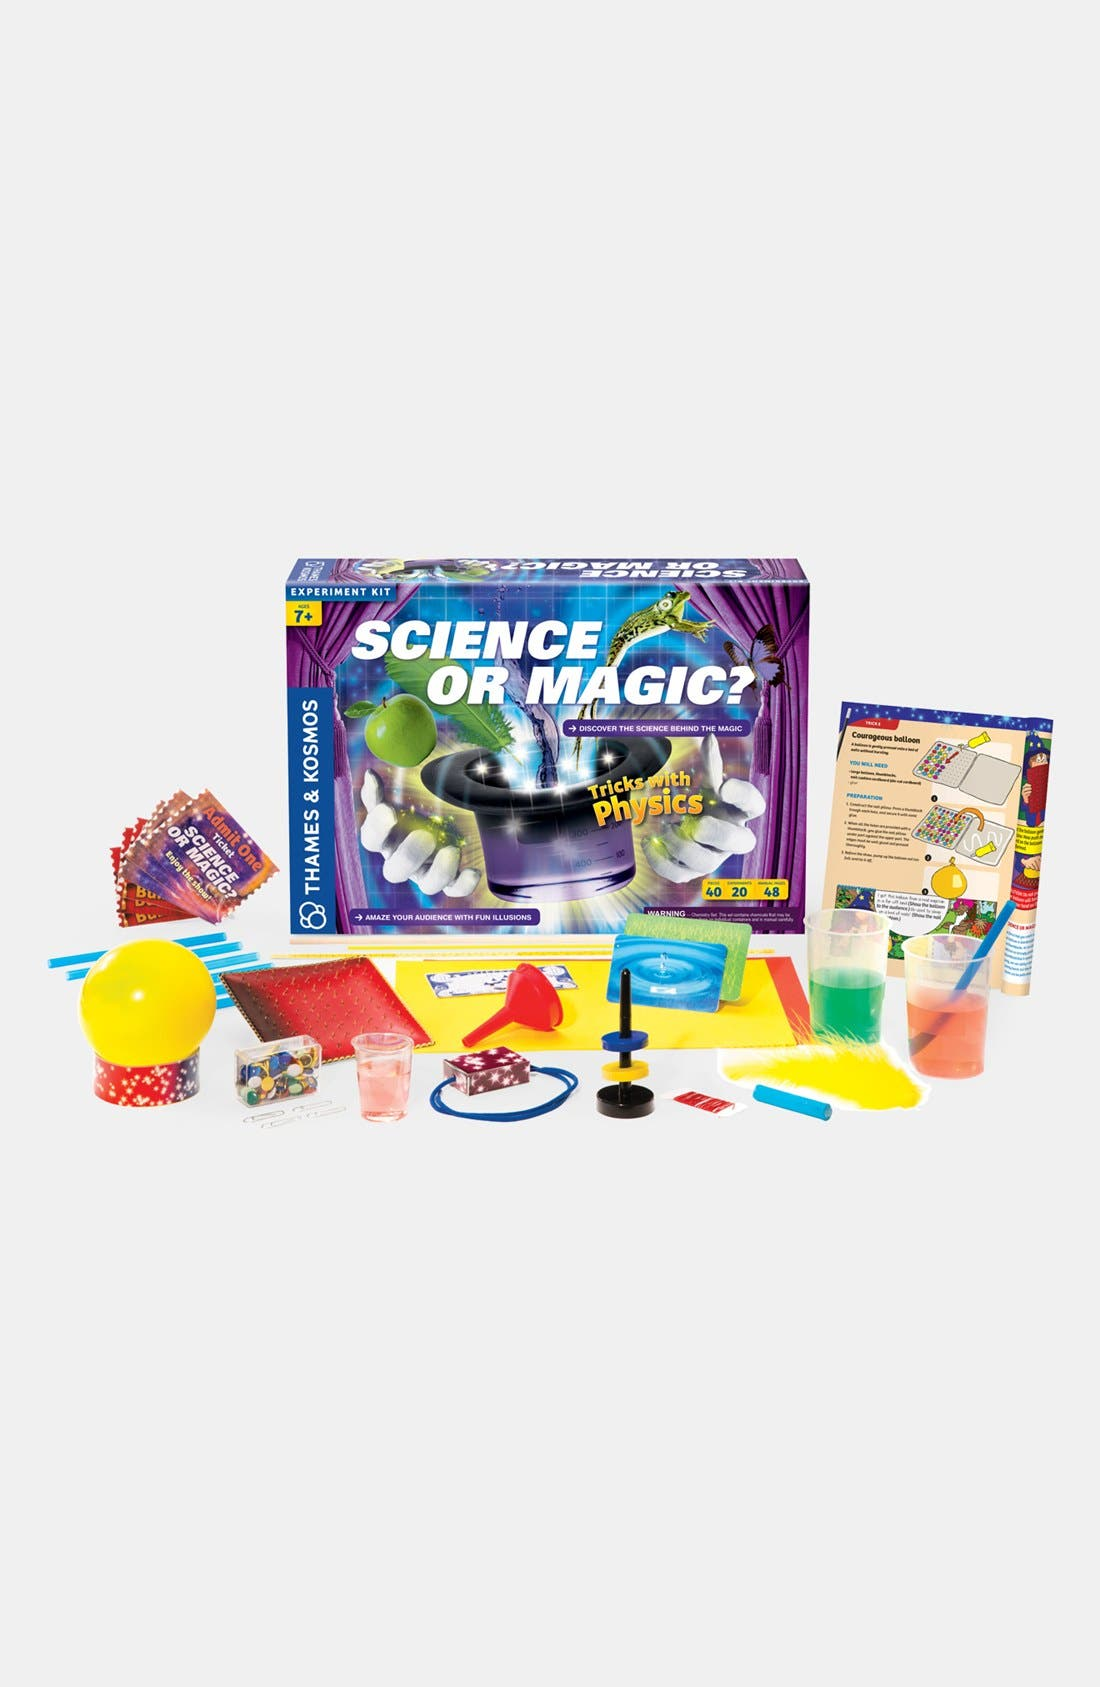 Thames & Kosmos 'Science or Magic?' Kit